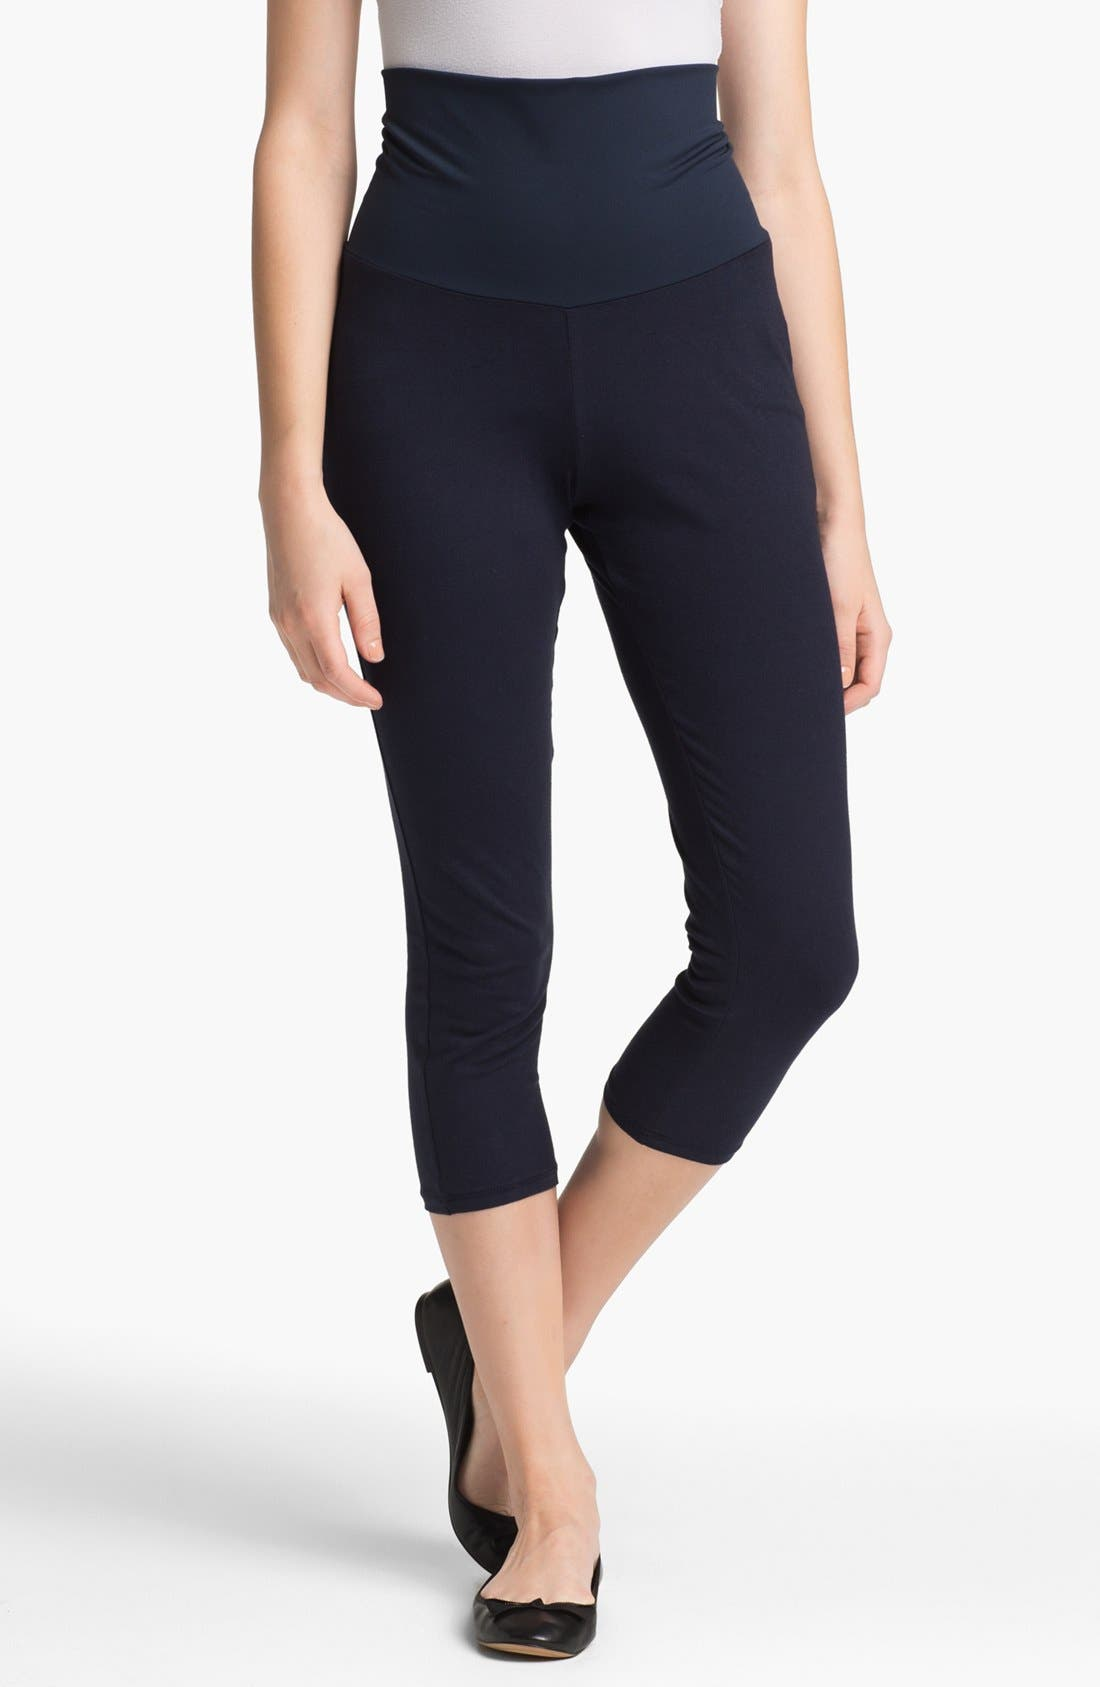 Post Support Crop Maternity Leggings,                         Main,                         color, Navy